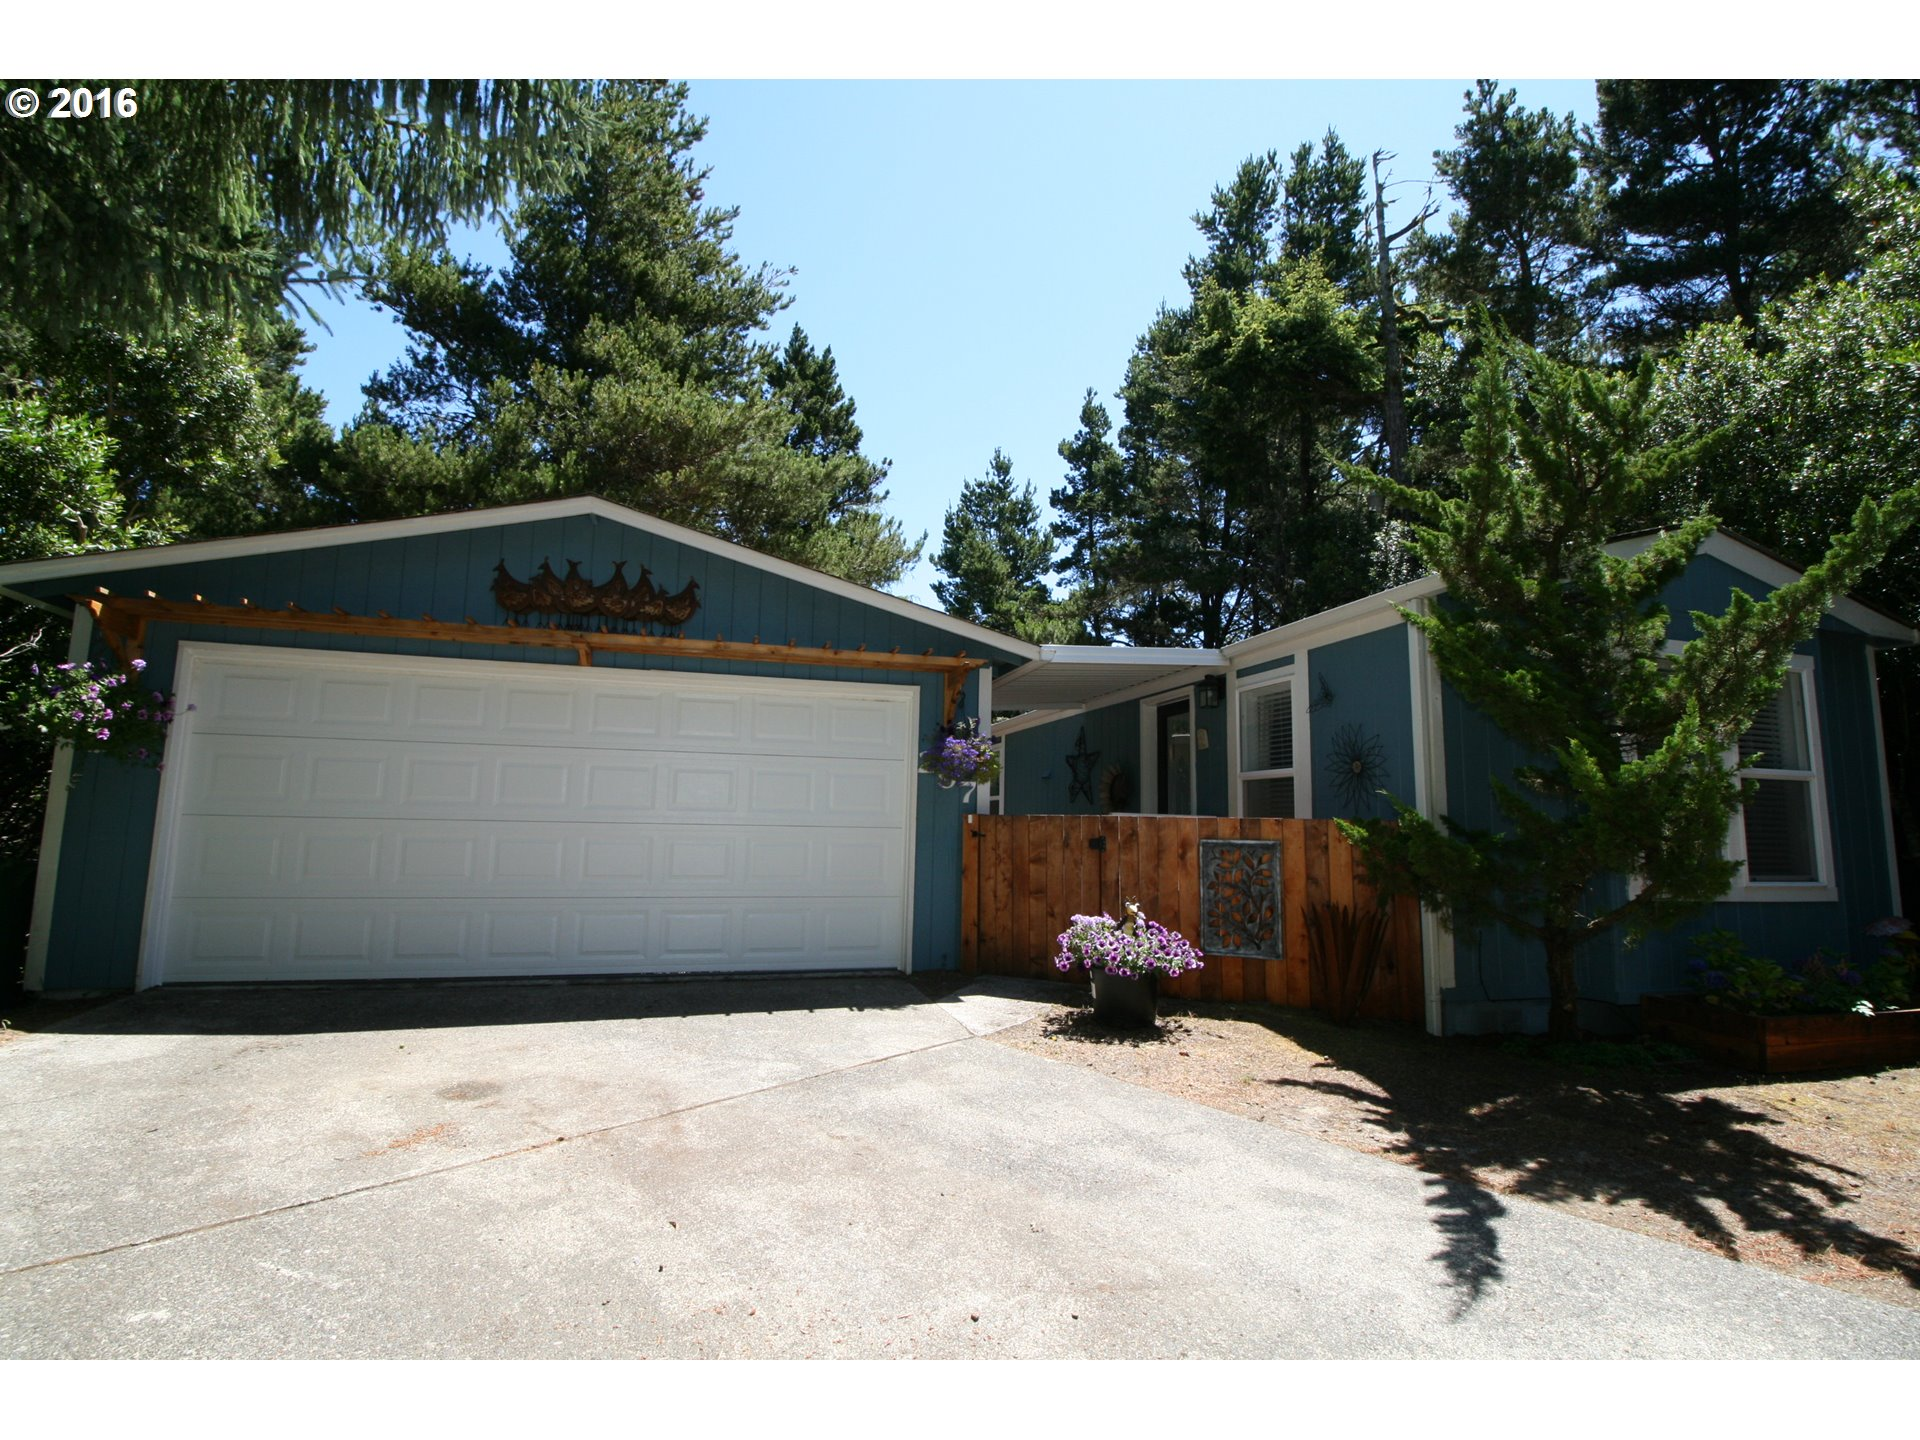 1600 rhododendron dr 297 florence or 97439 for sale mls